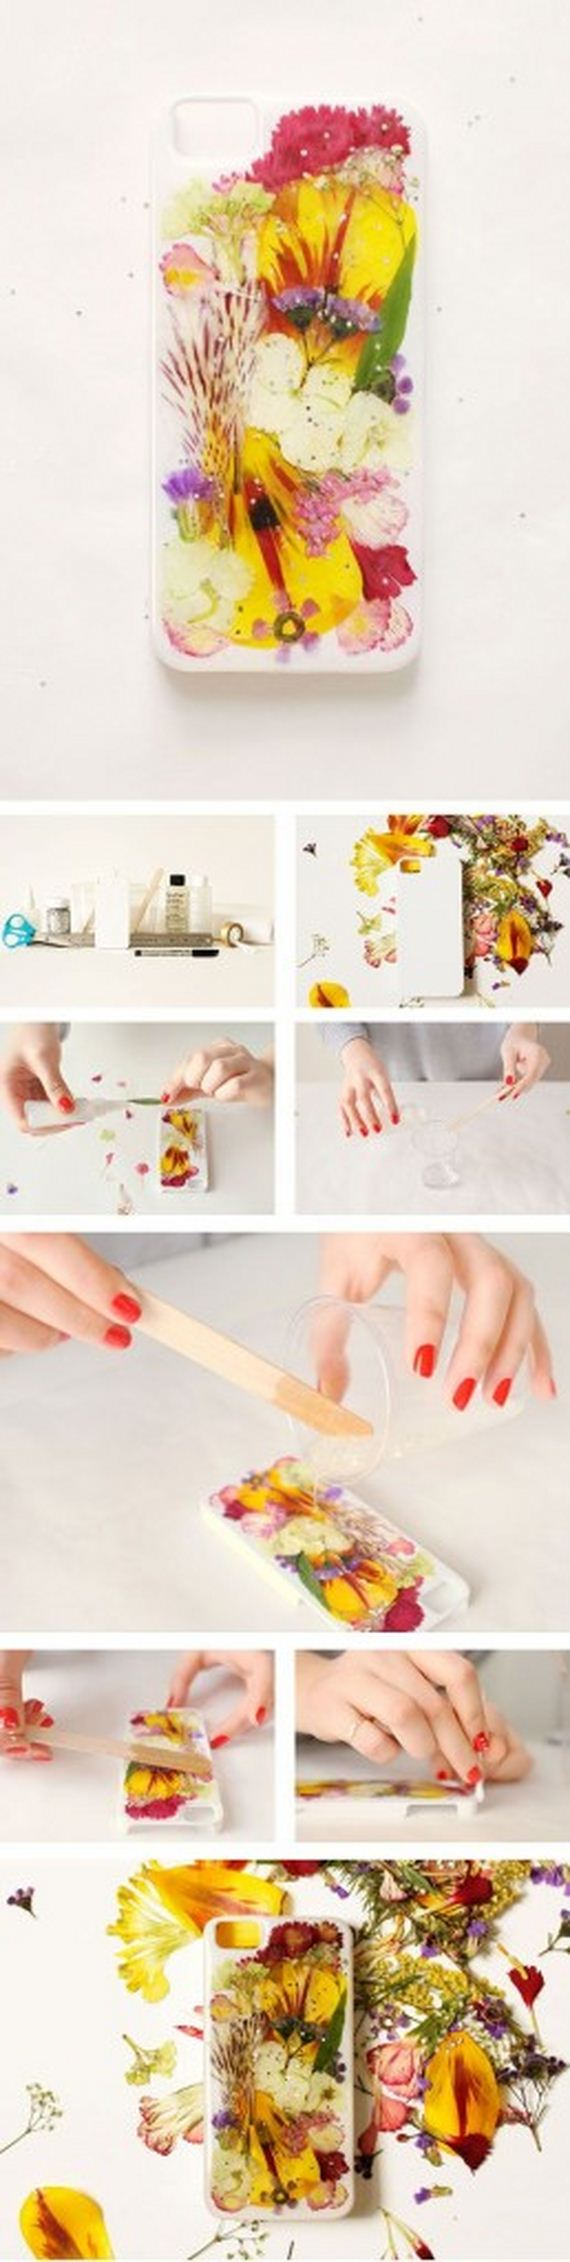 32-DIY-SPRING-PROJECTS